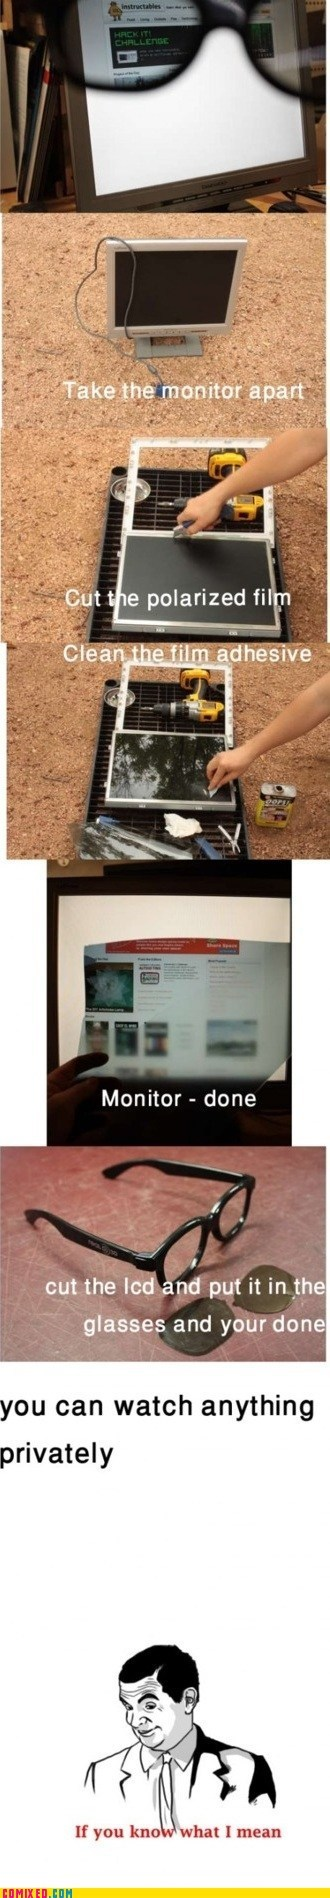 best of week computer DIY hack monitor pr0n the internets - 5949465856